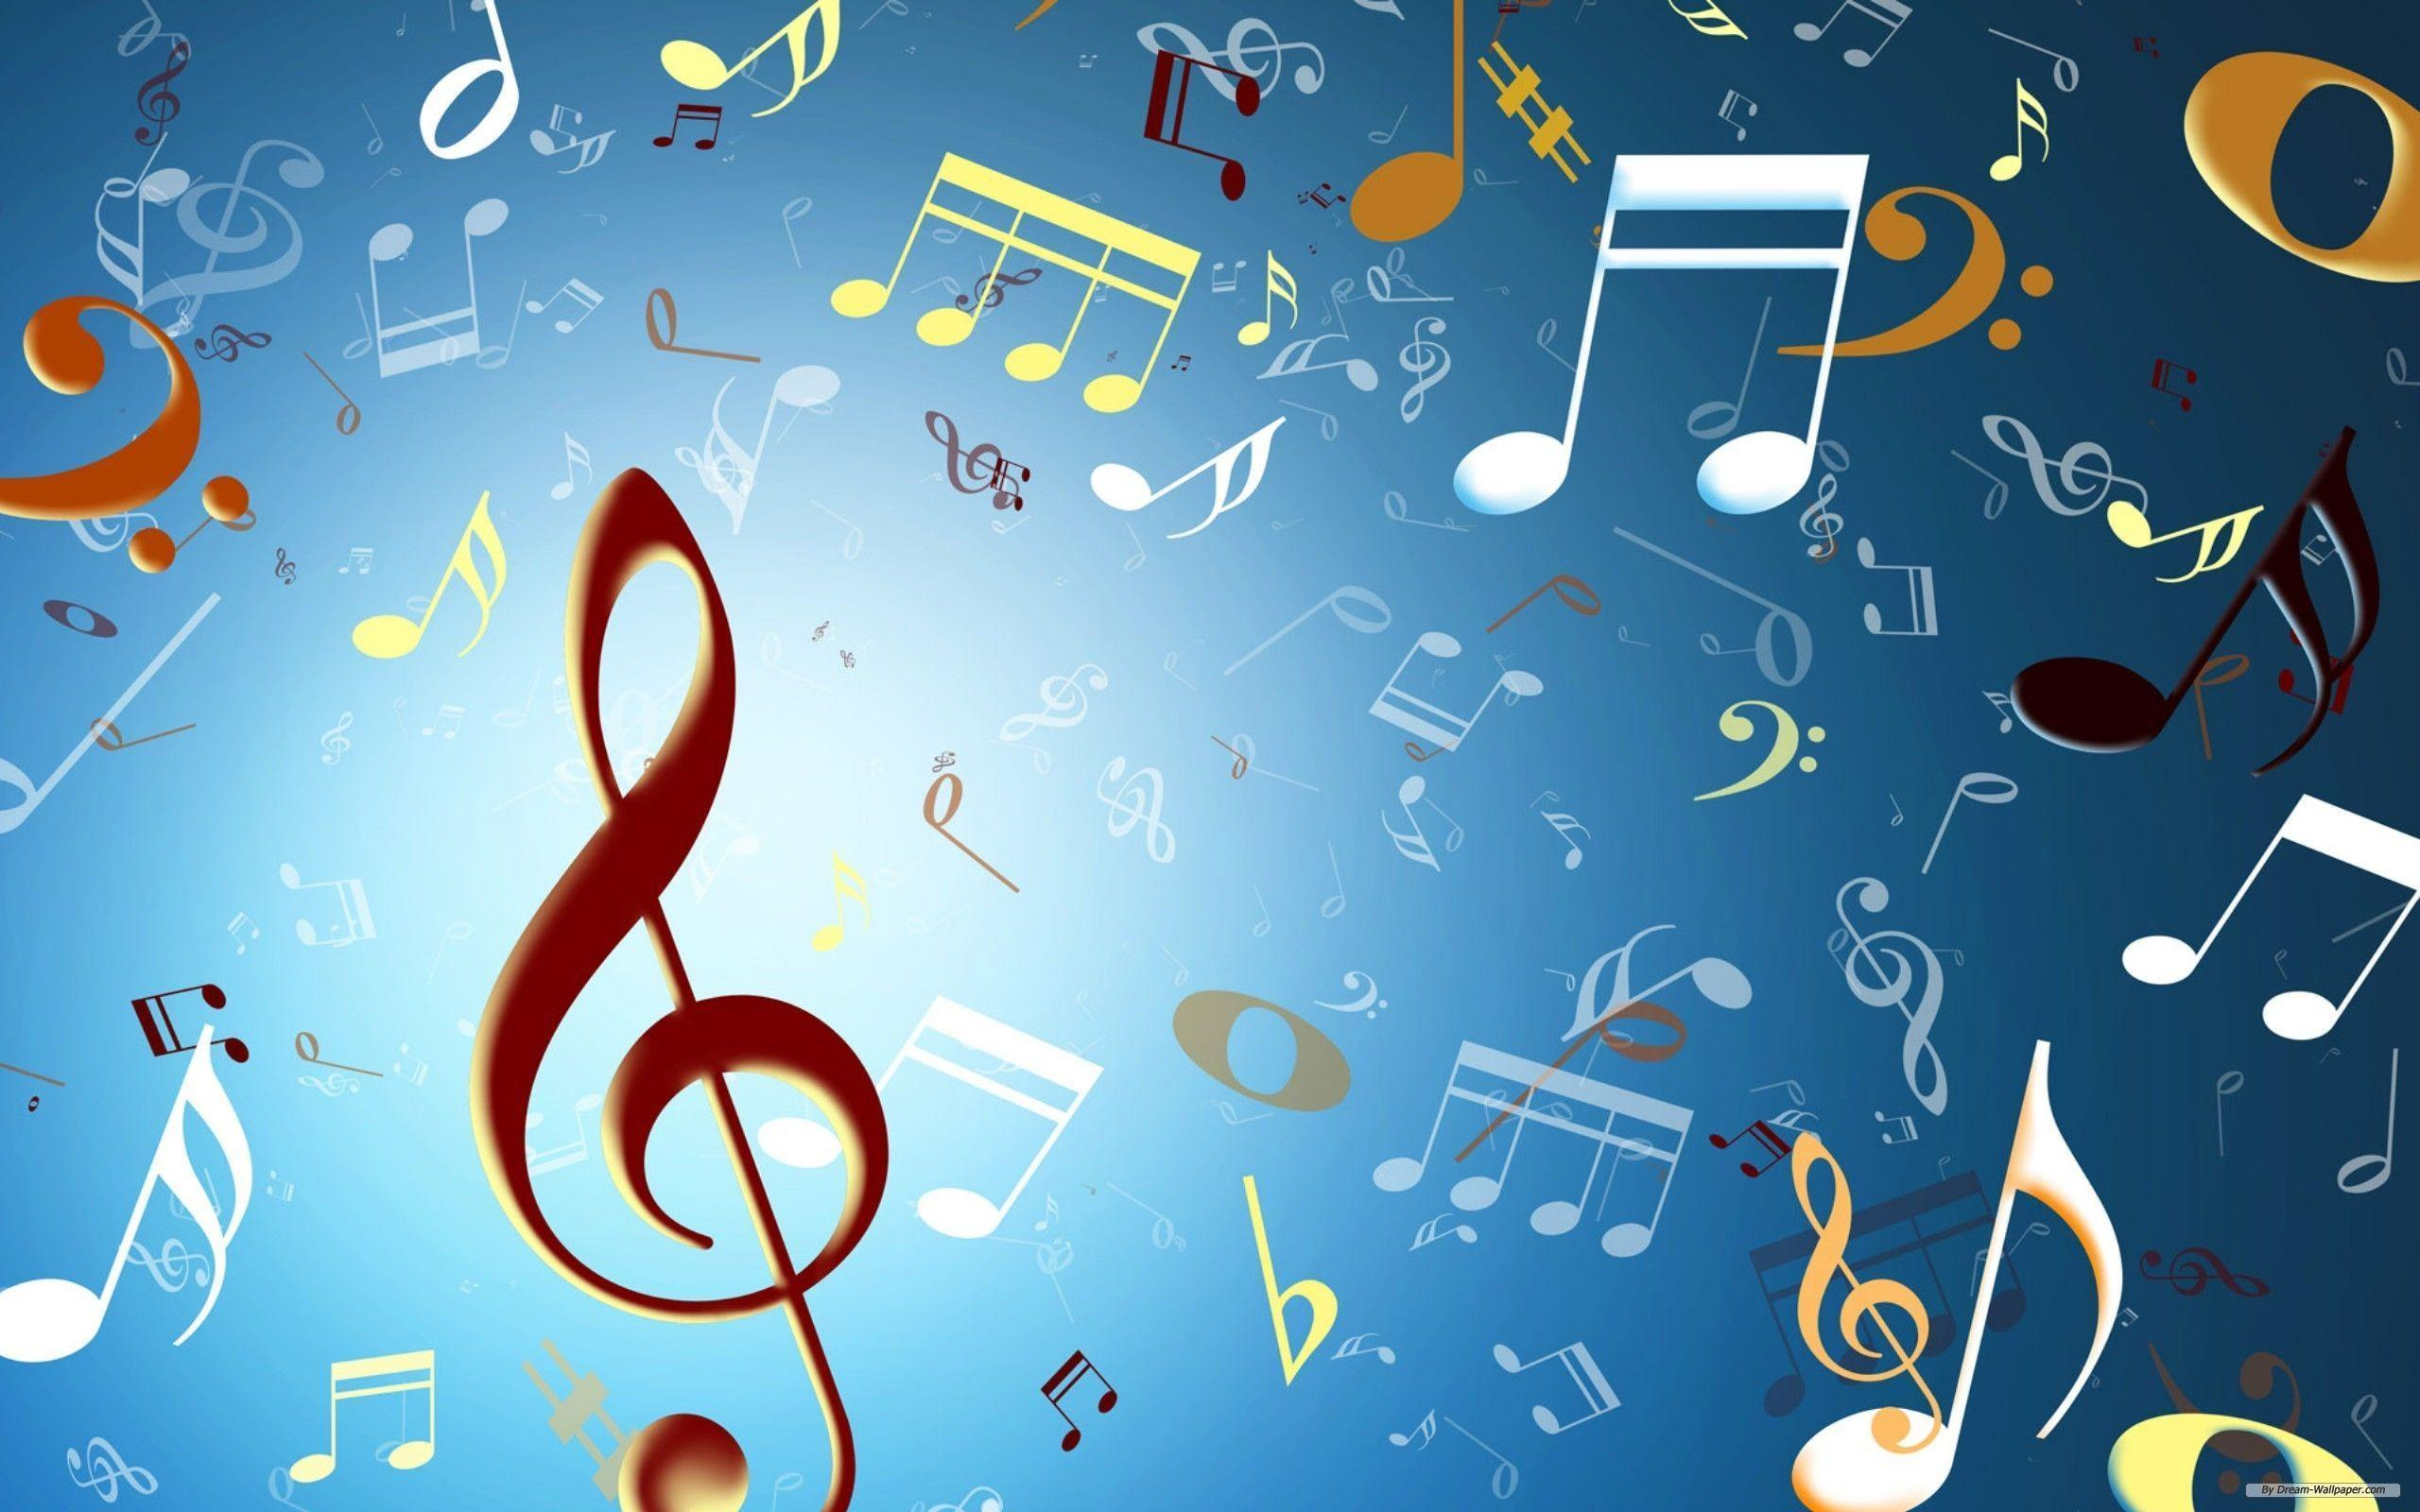 Does Music Affect Our Energy Field And Our Spiritual Growth? | Light